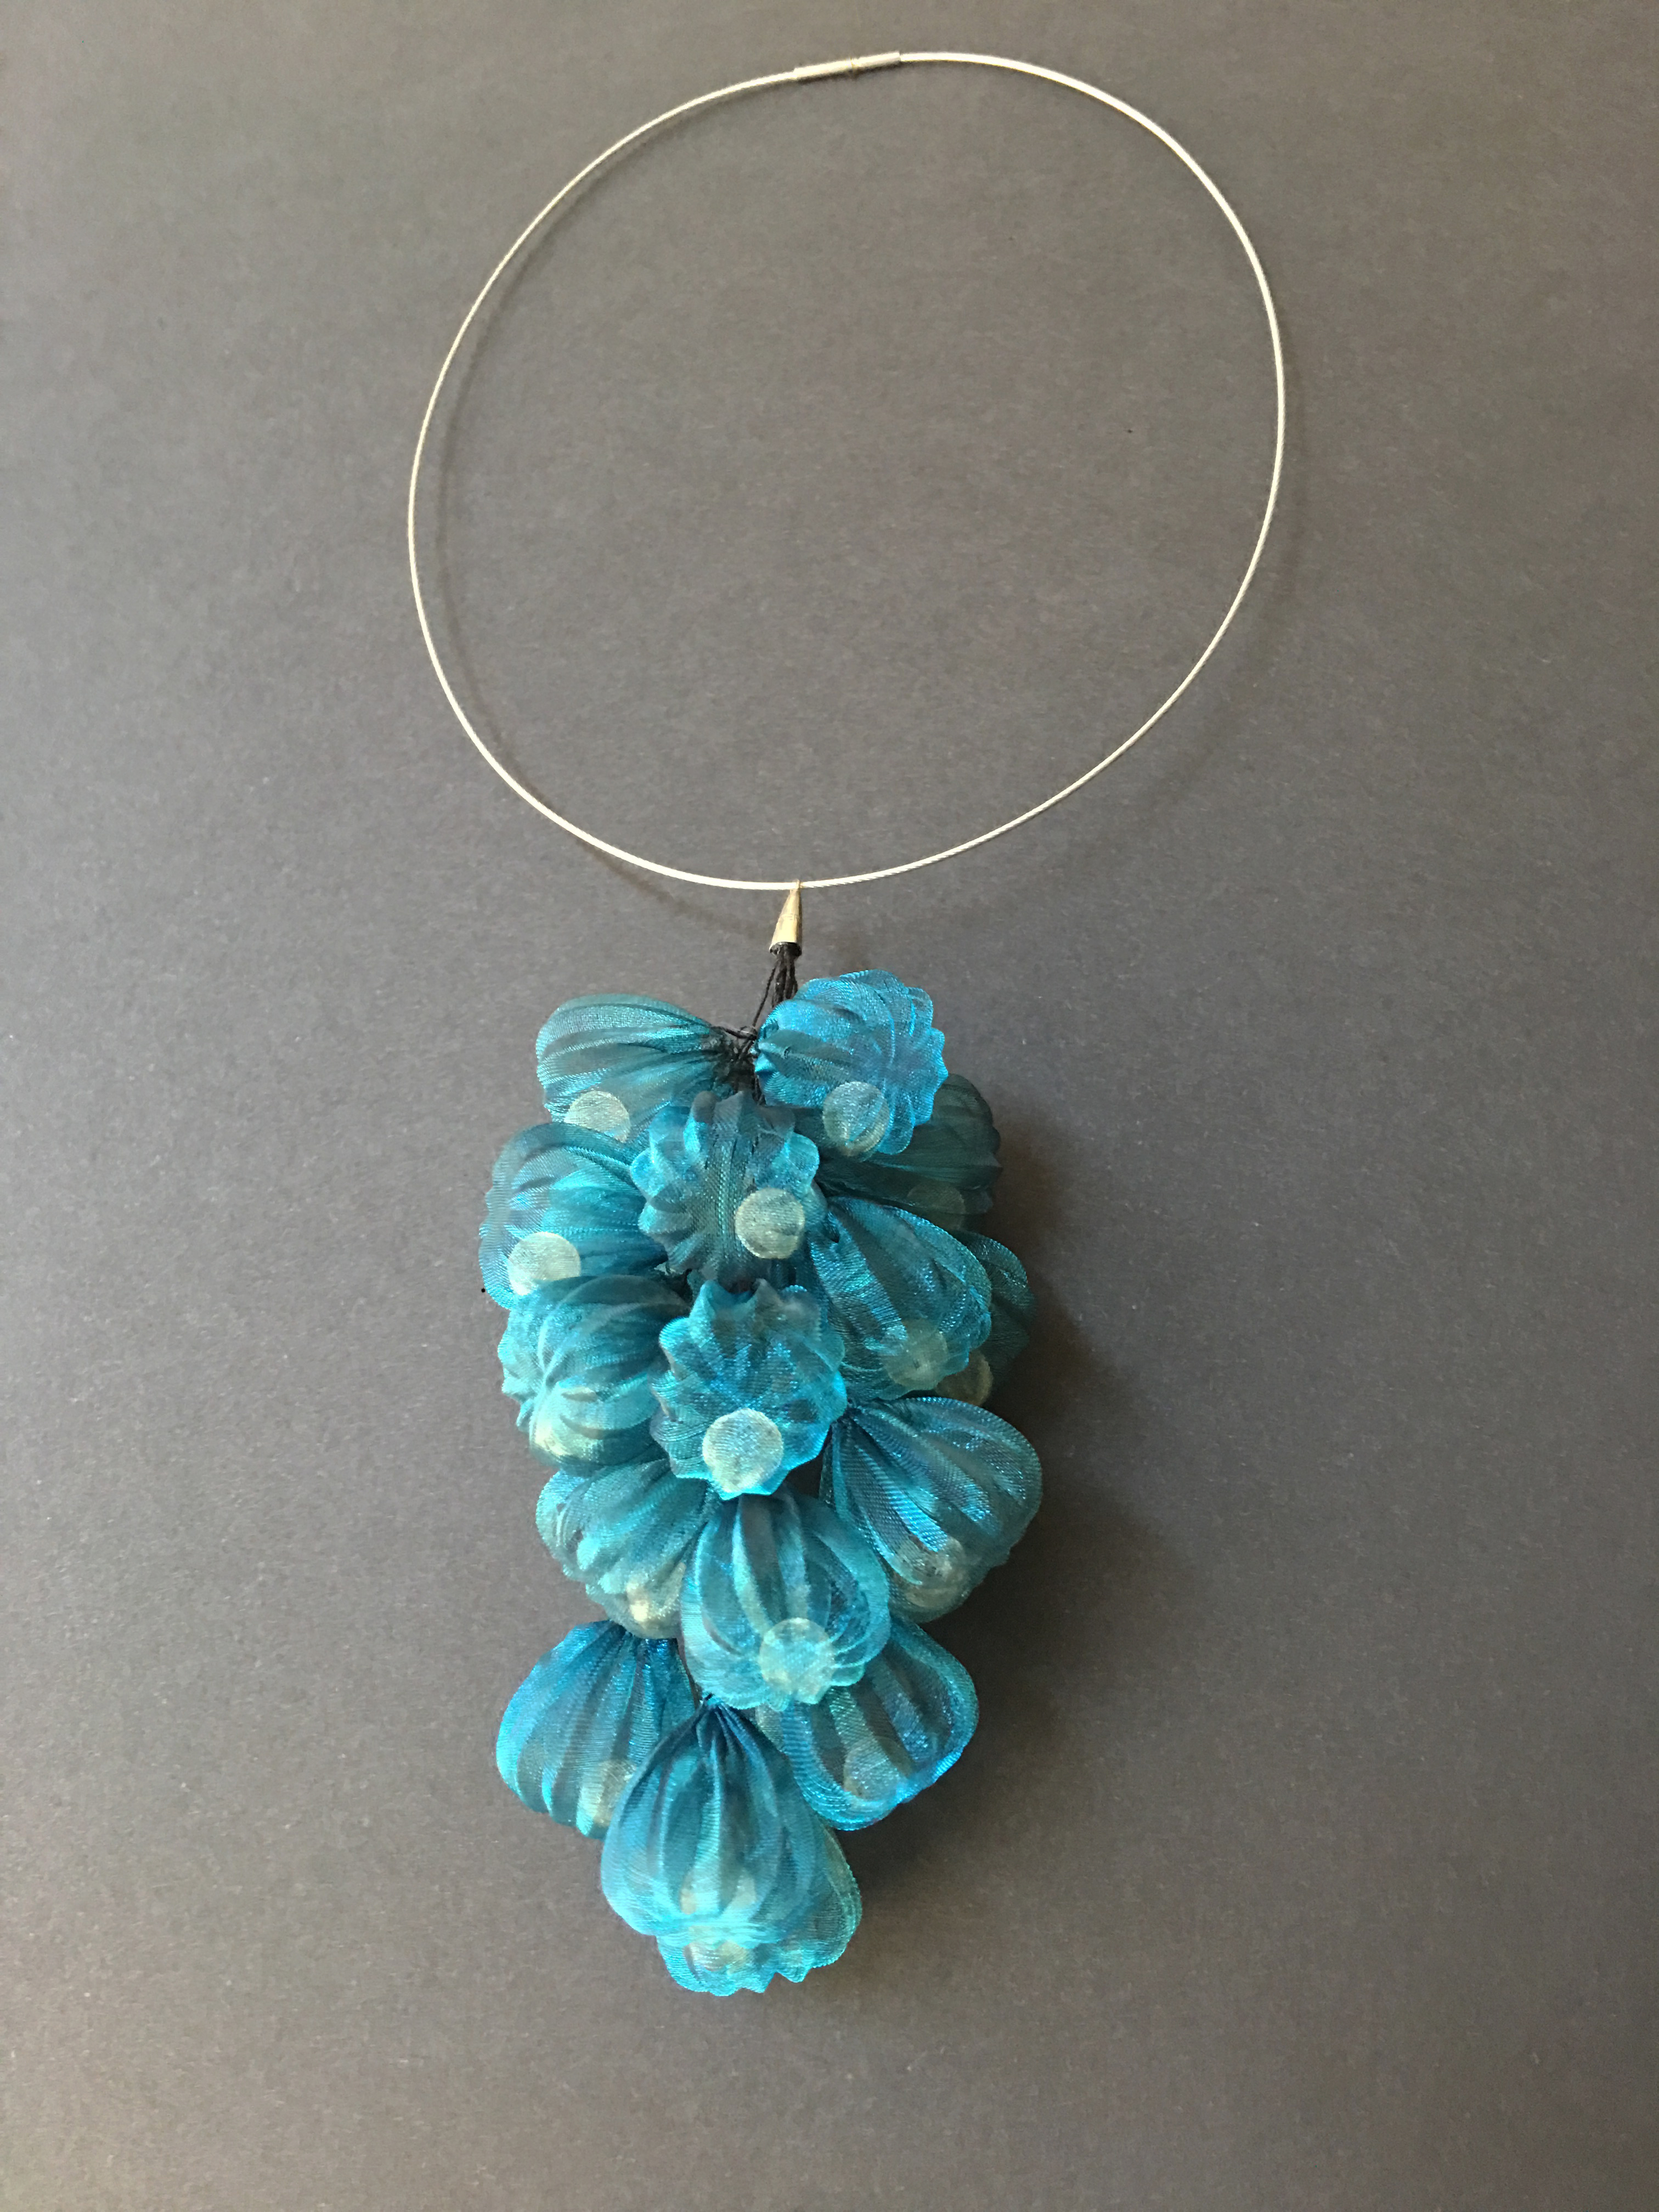 bluebells necklace